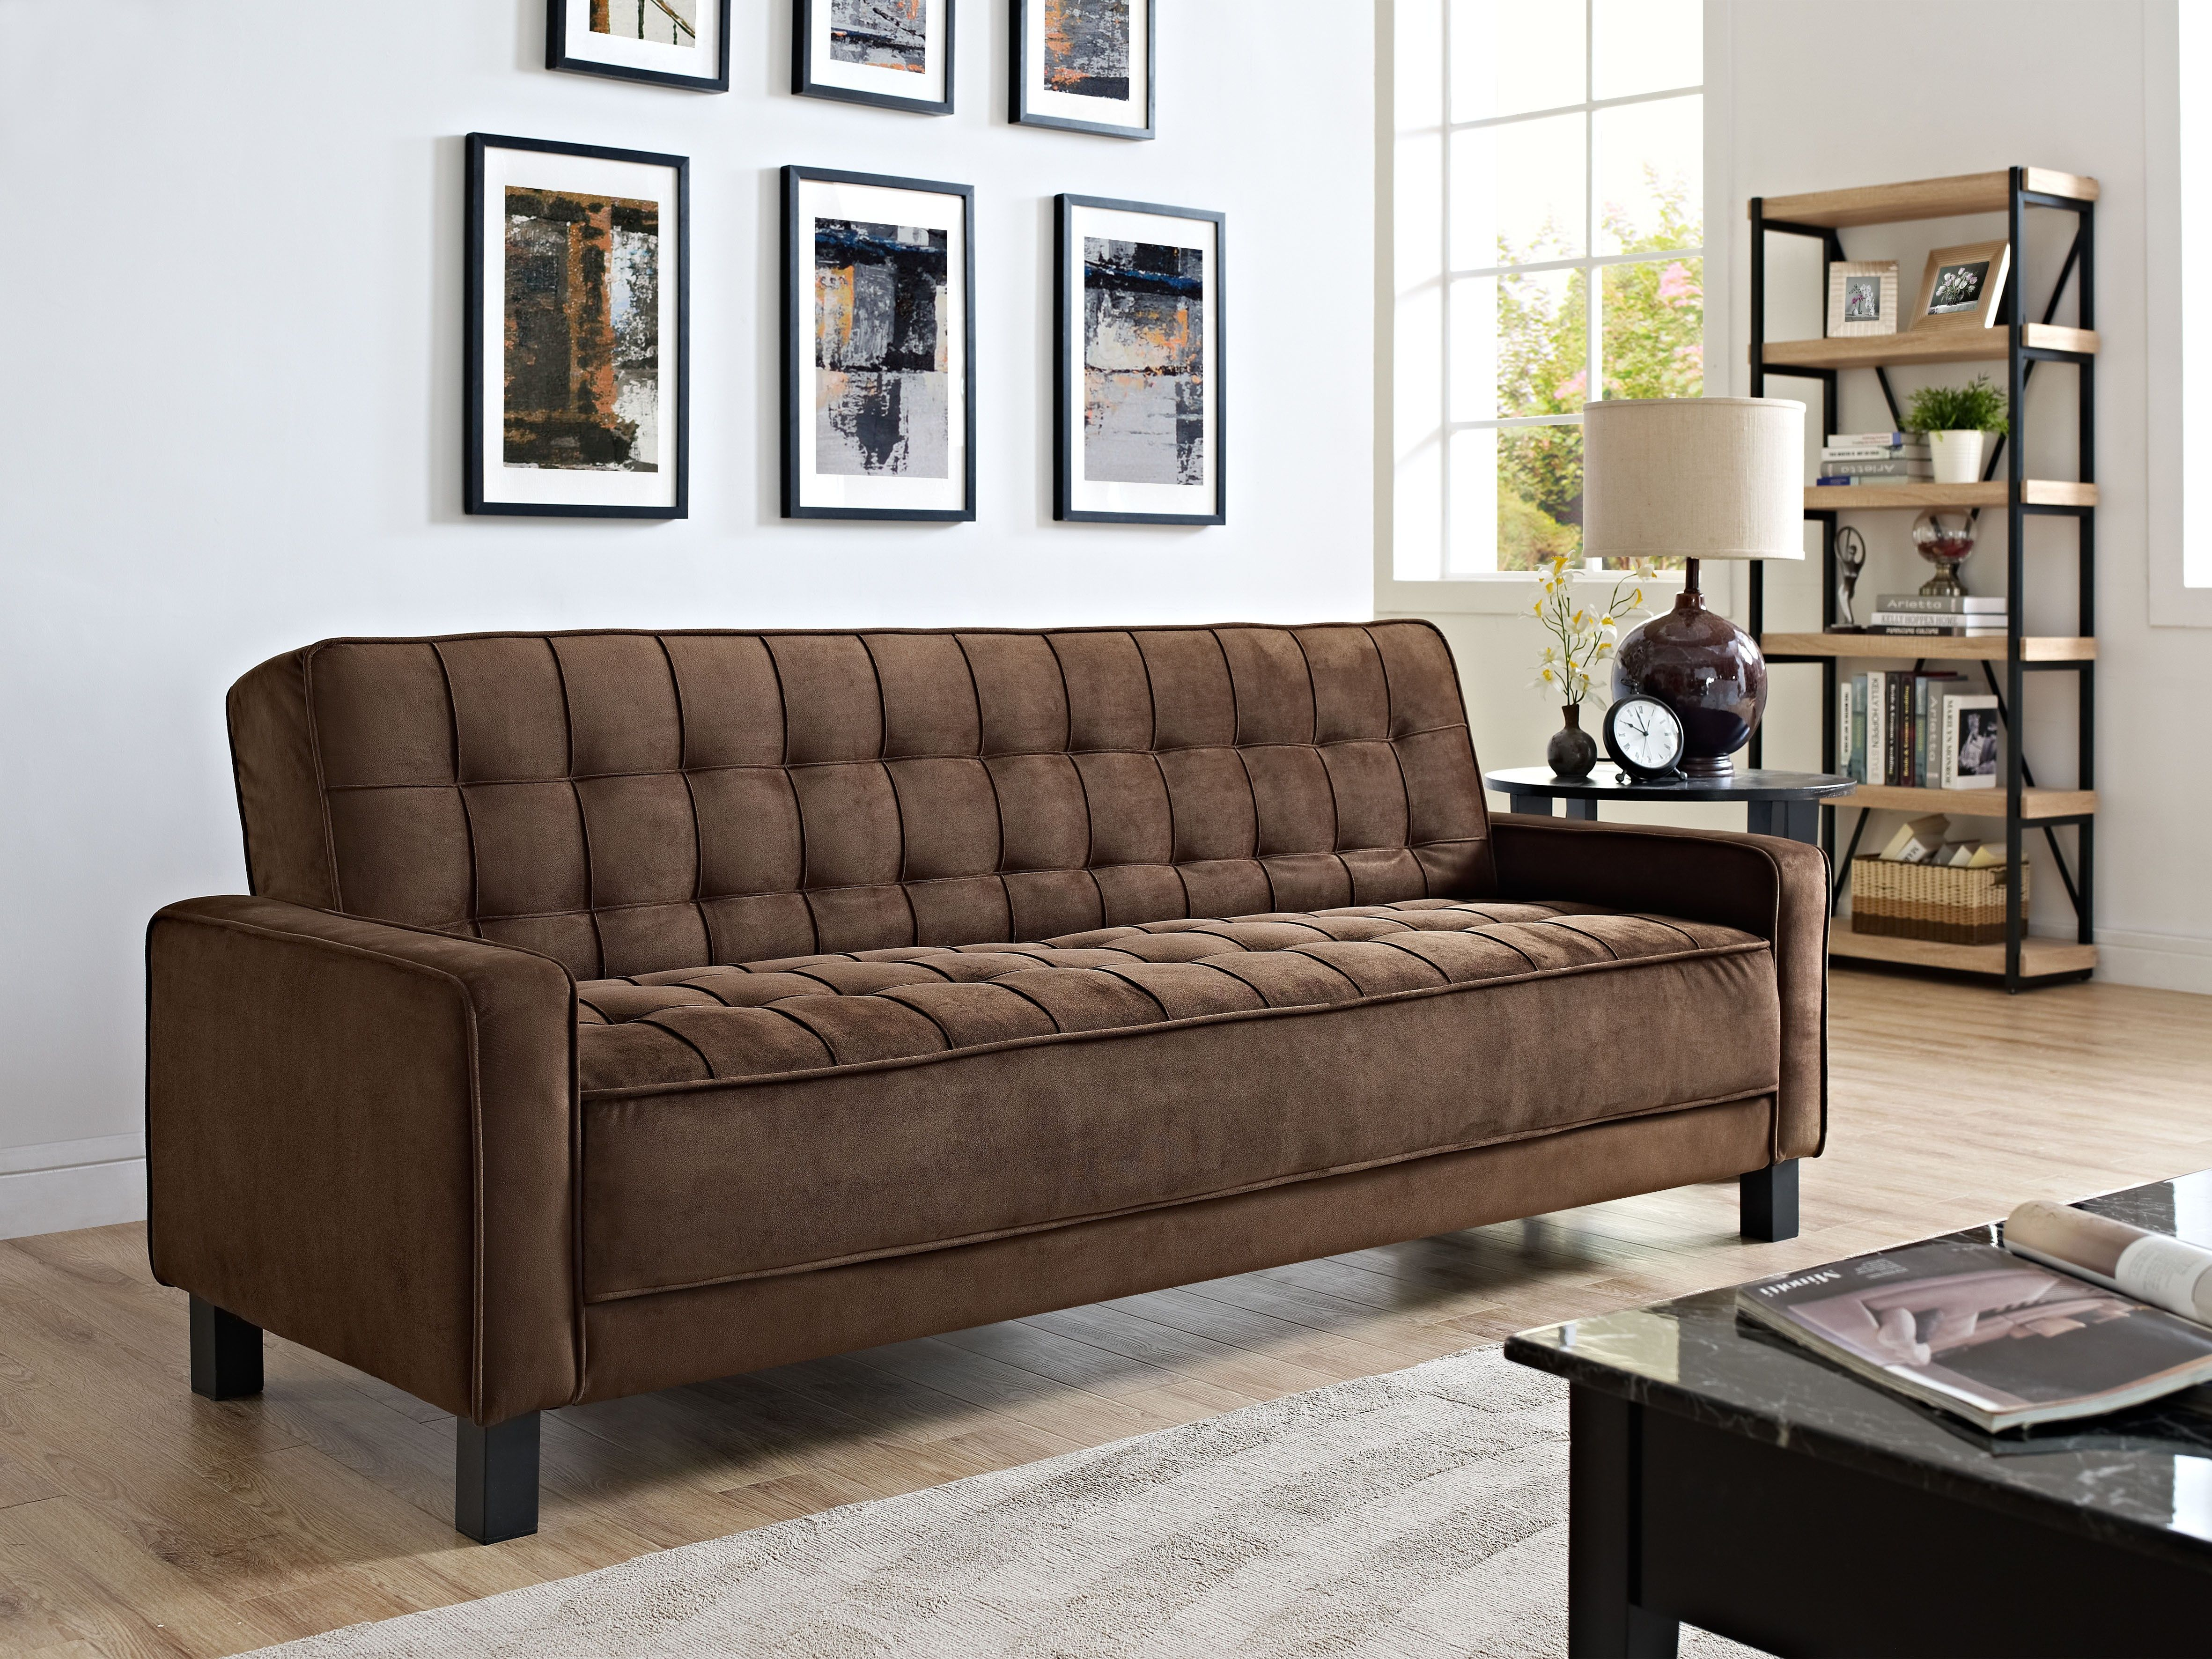 Black Sofa Beds For Sale Chicago Rooms To Go Review Lifestyle Solutions Convertible Mckinley Bed My Euro Lounger The Futon